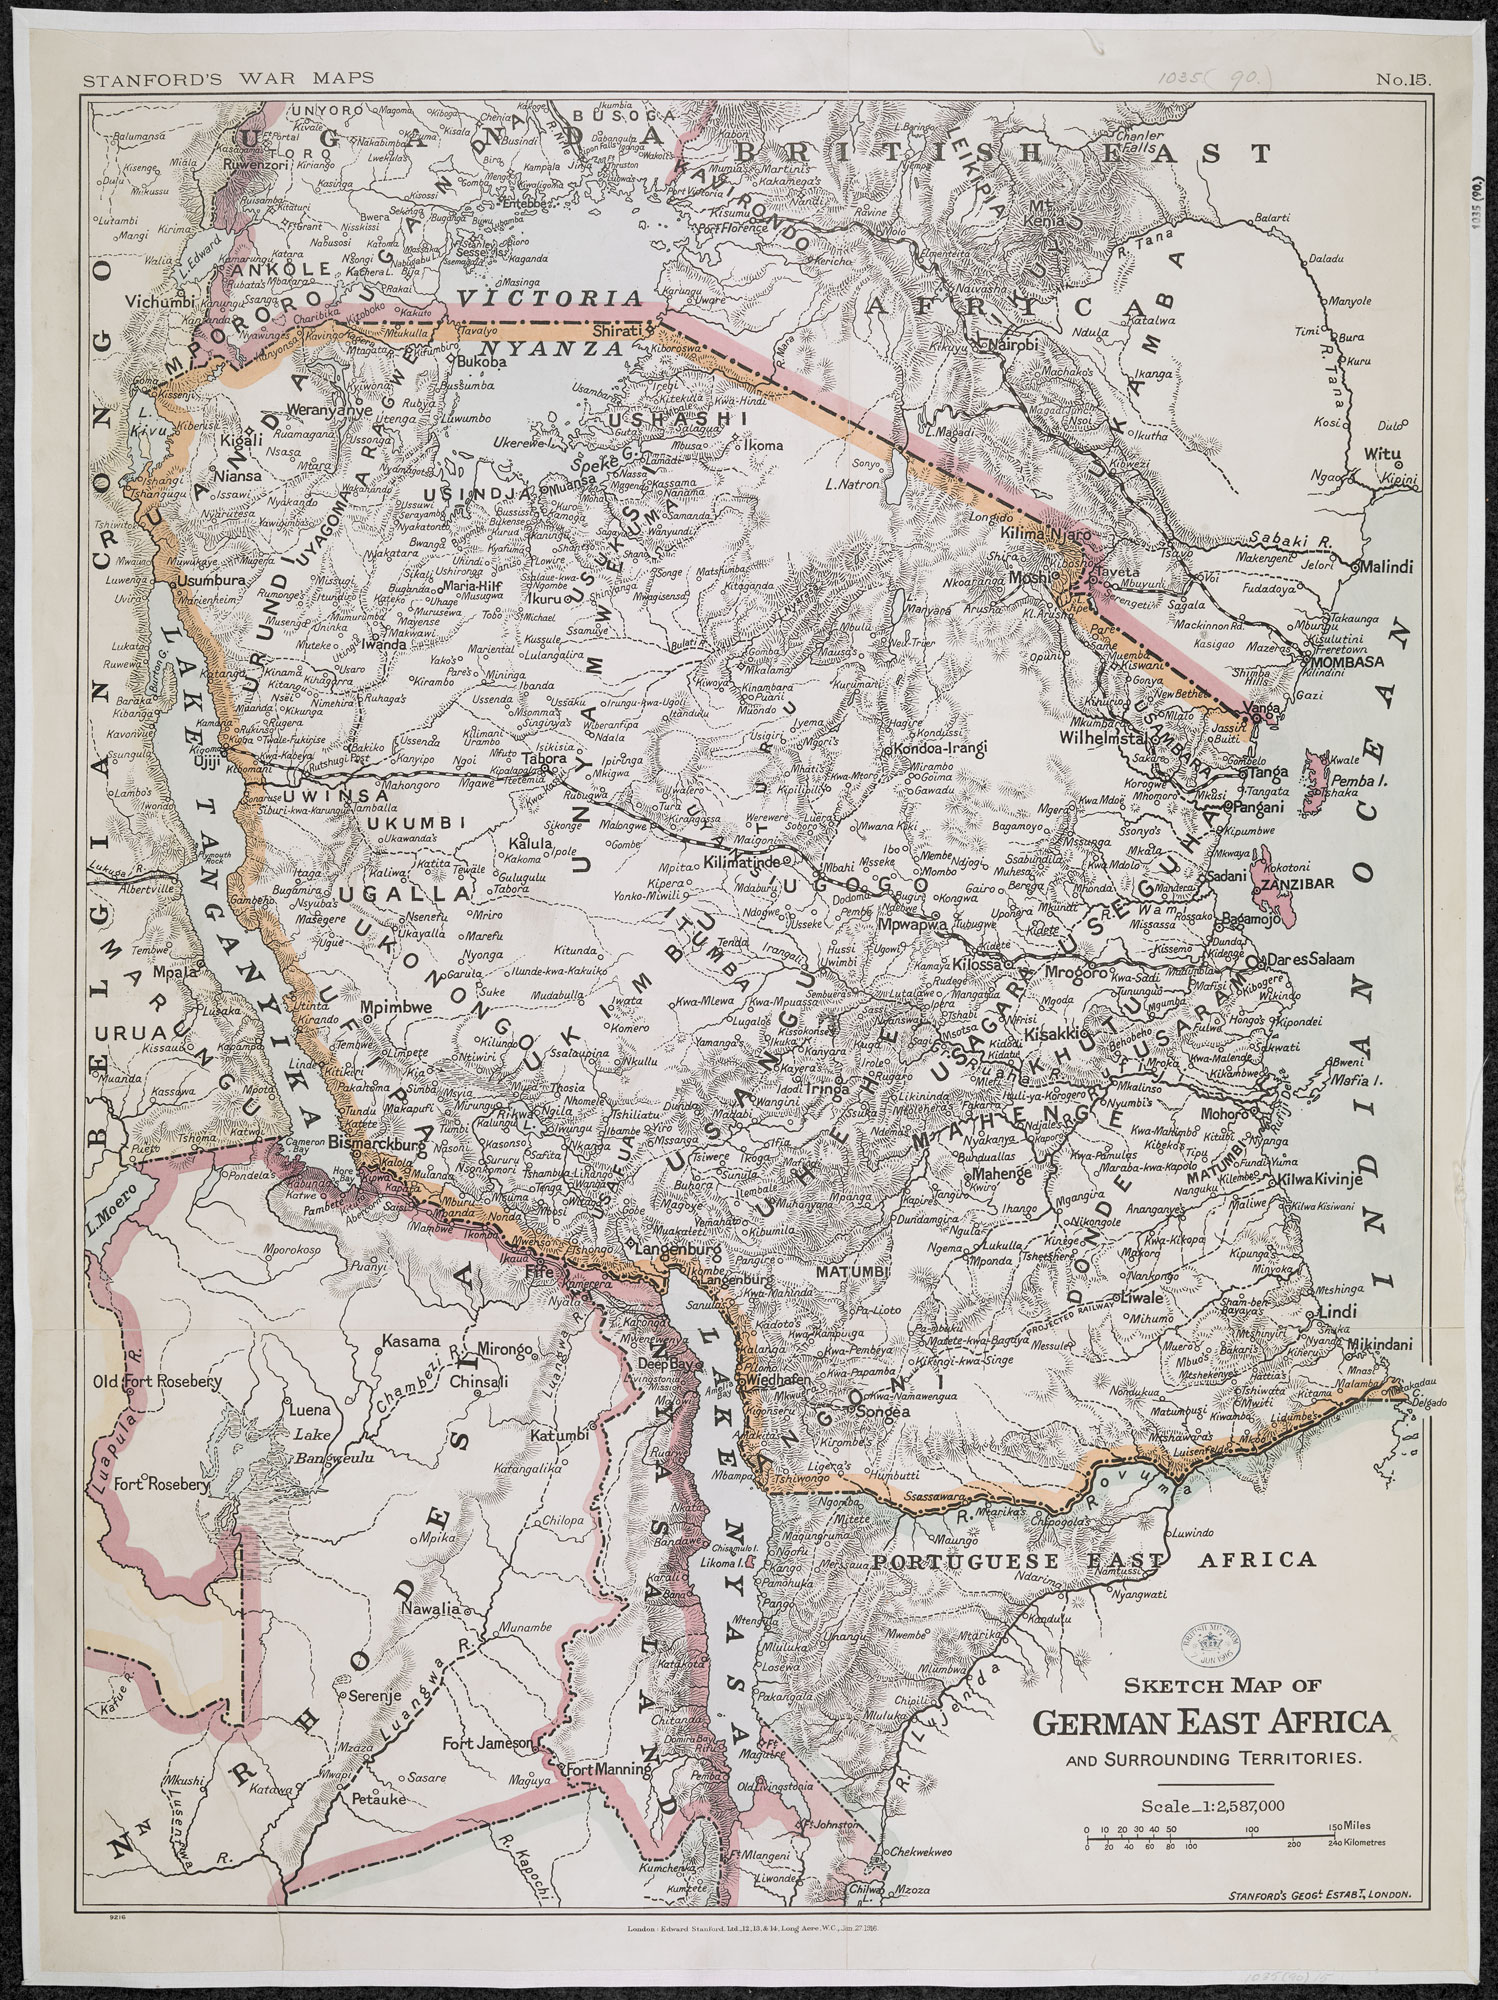 Stanfords war maps showing German East Afric